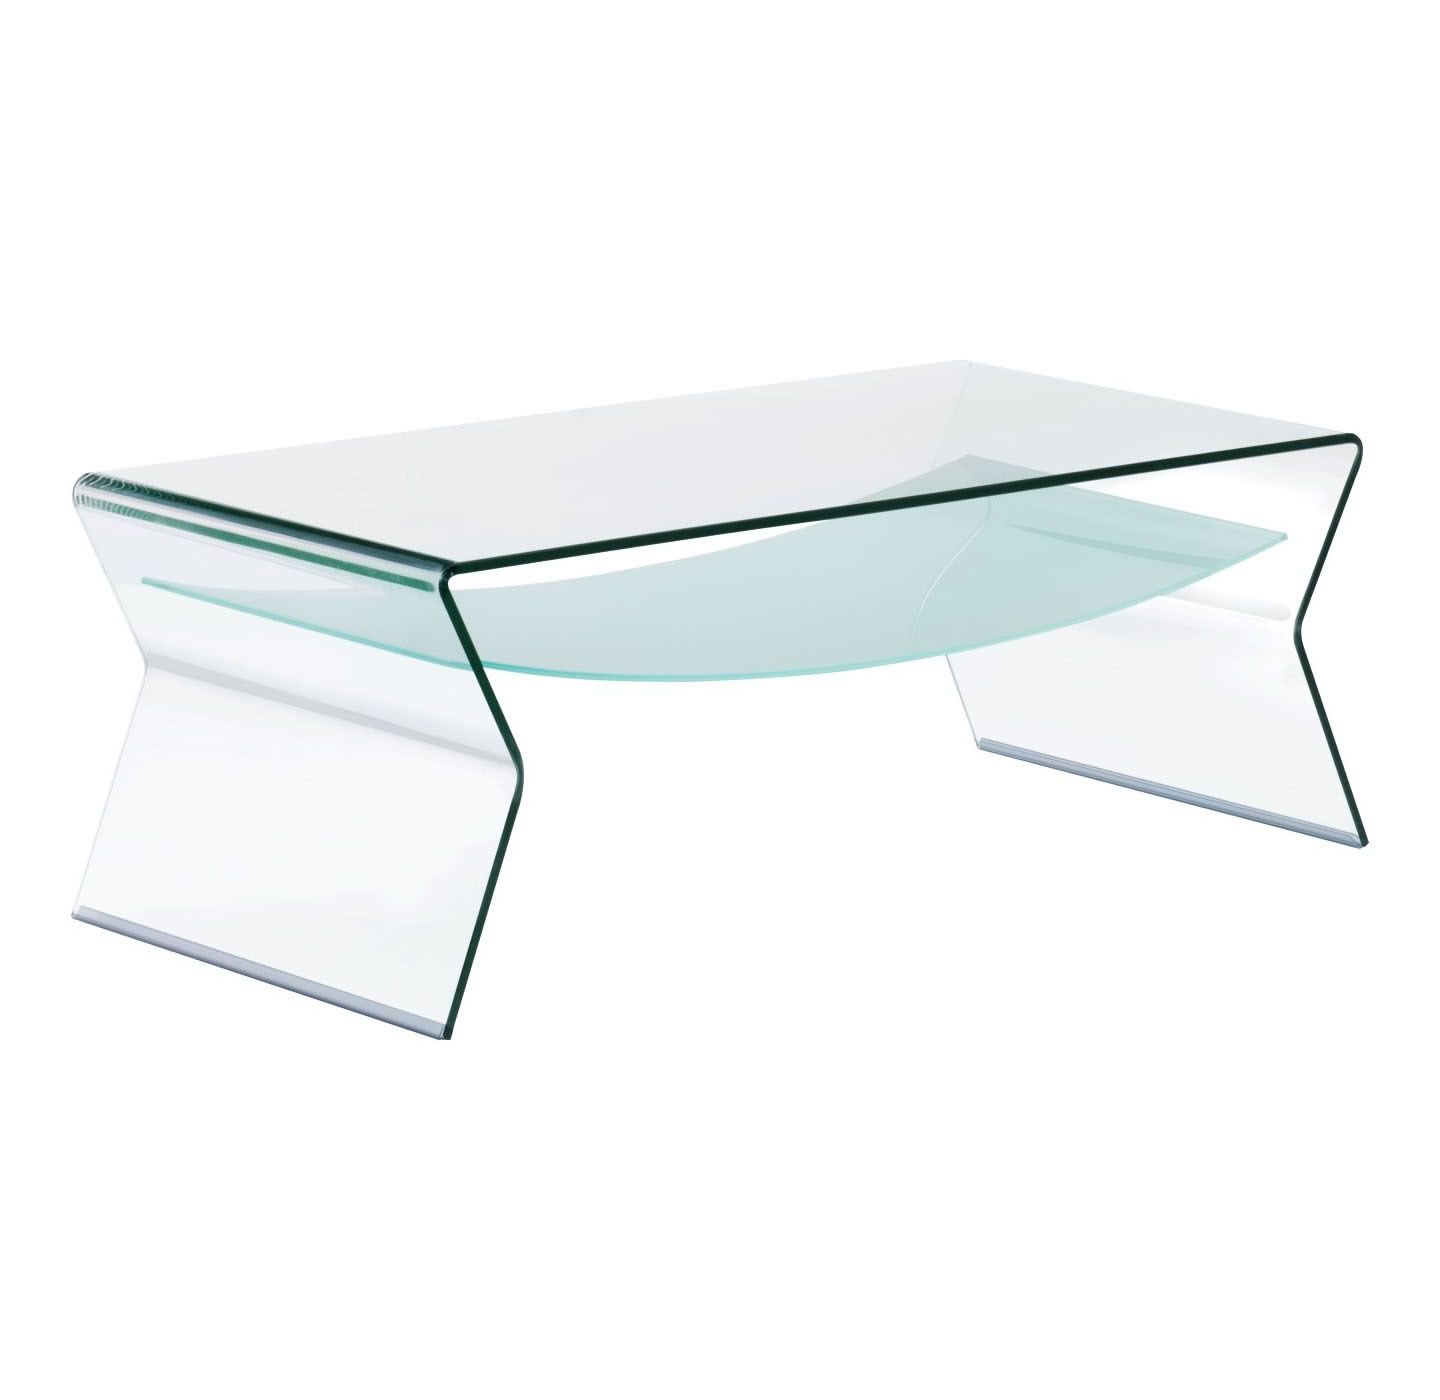 Yoga Coffee Table Clear Frosted Coffee Table Coffee Table With Shelf Modern Coffee Tables [ 1400 x 1440 Pixel ]